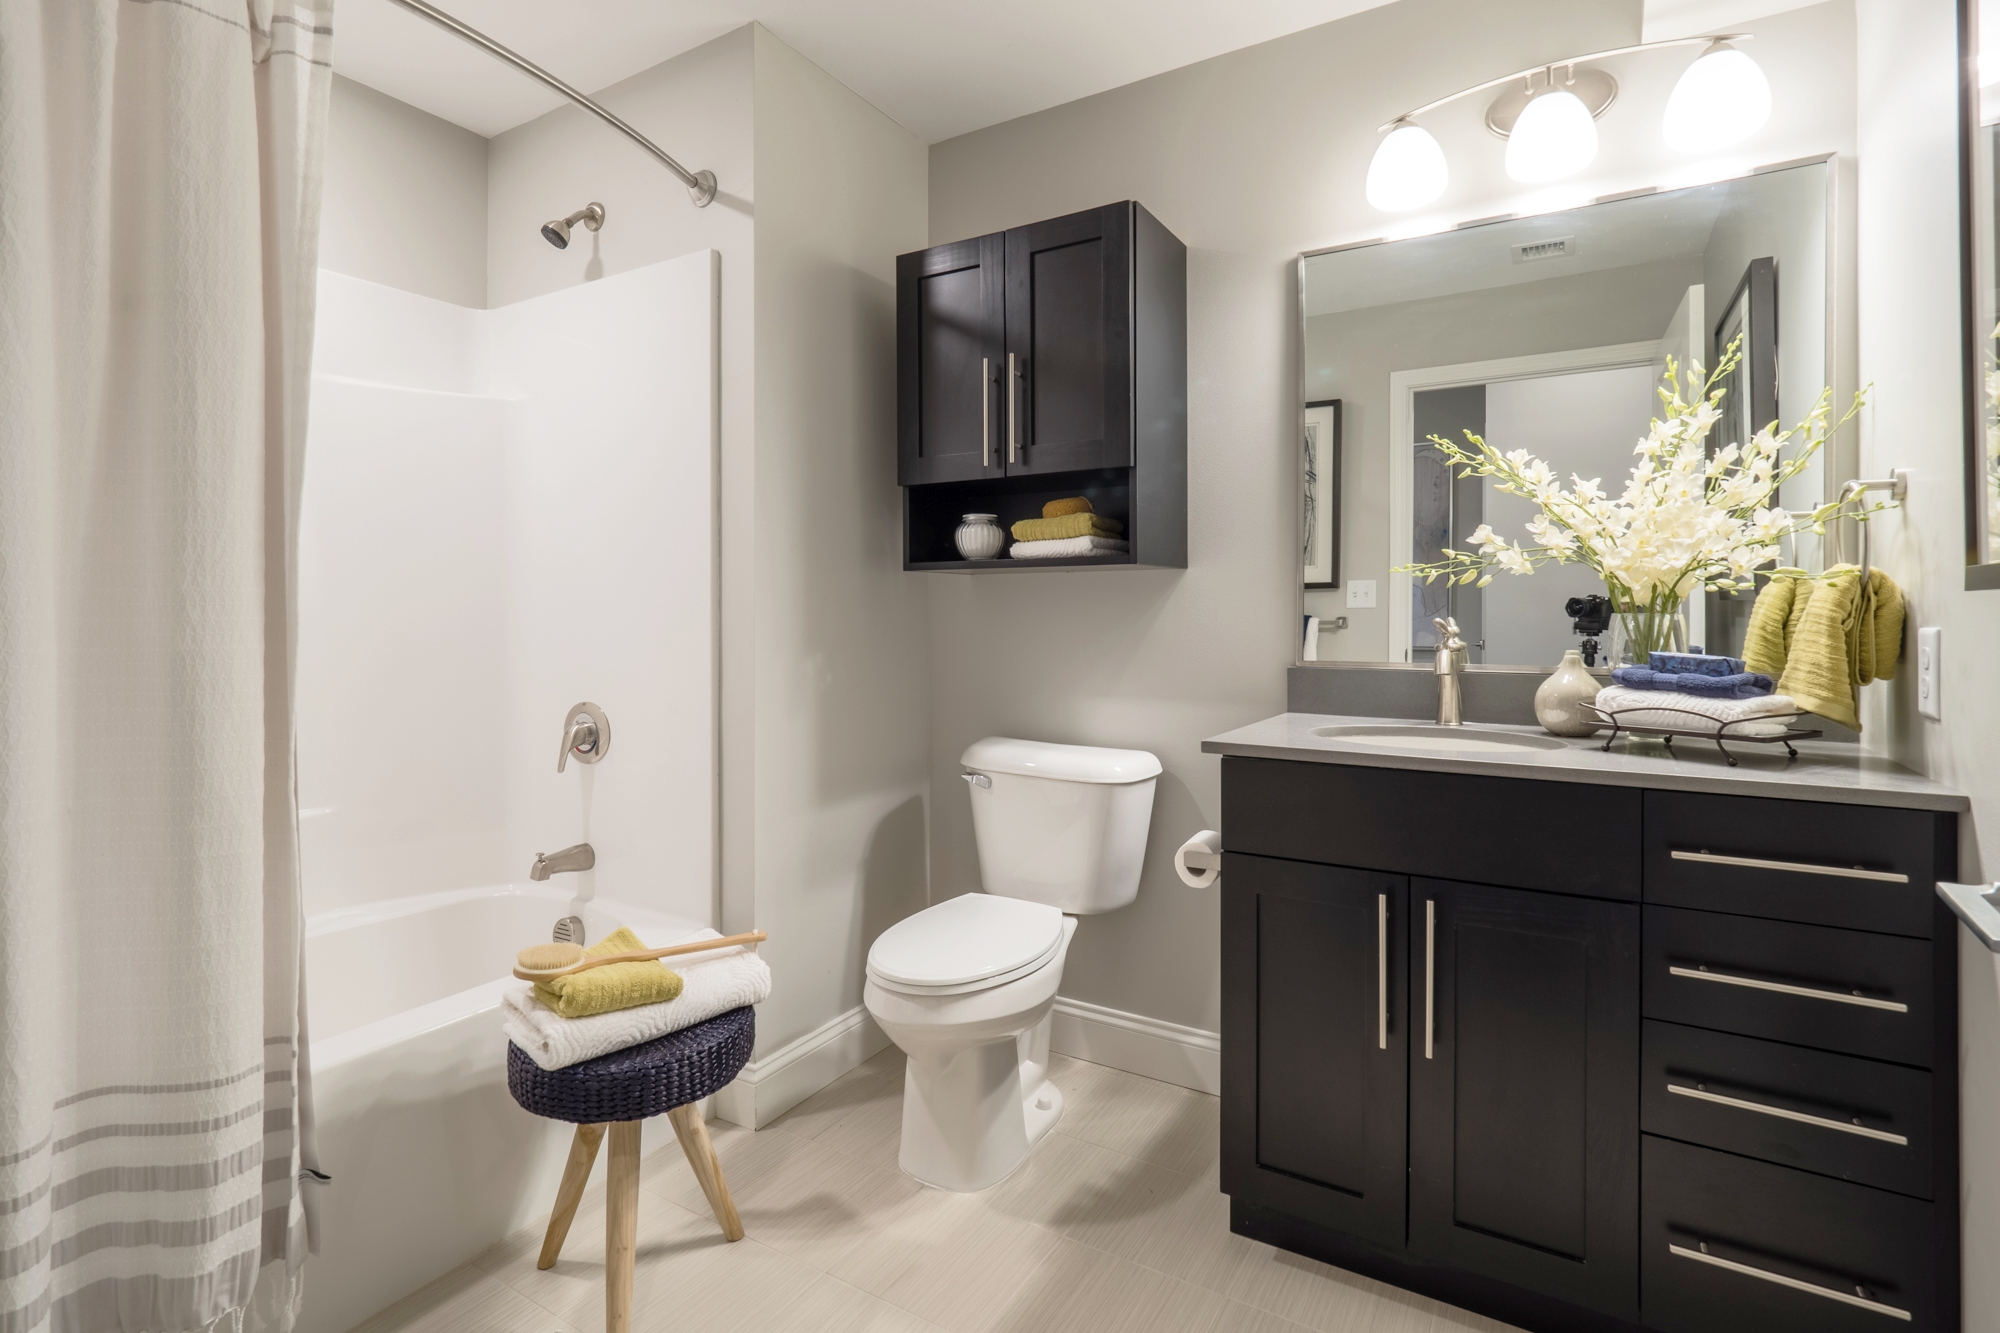 Bathrooms vary by floorplan. (Shown: 3 Sundial Ave.)